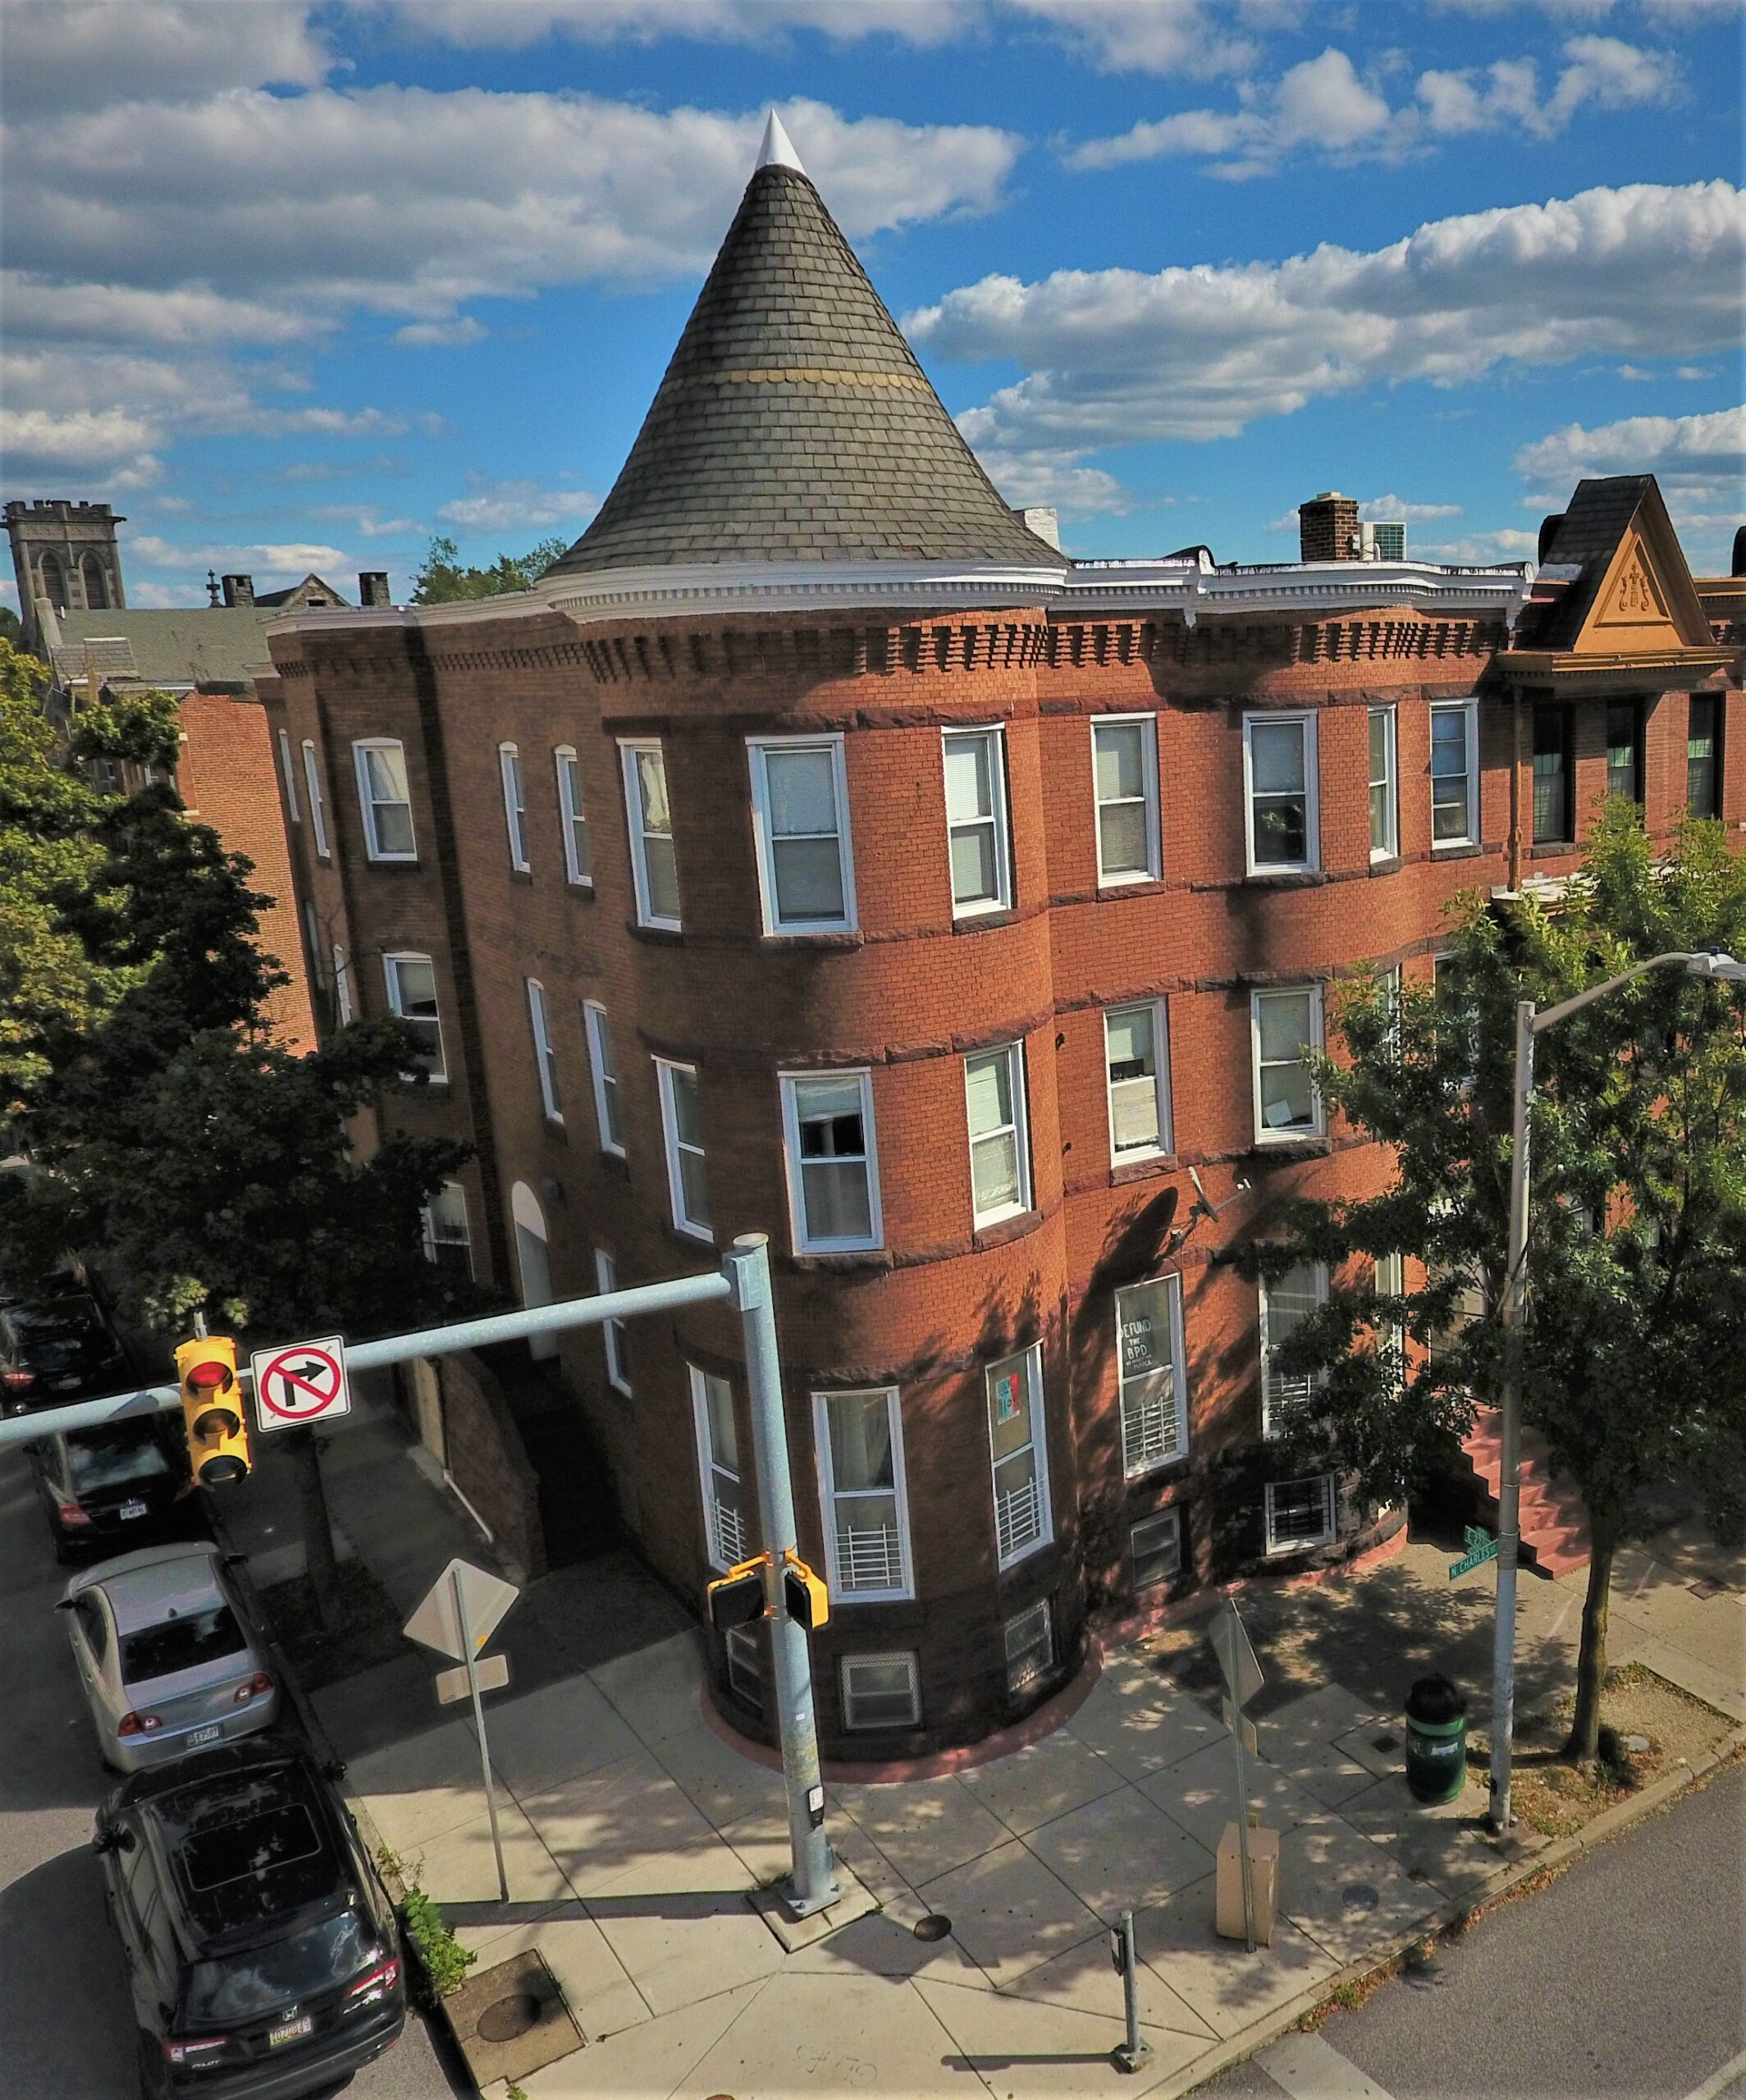 2645-2647 N Charles St: 7 Apartments, Rehabbed in 1992